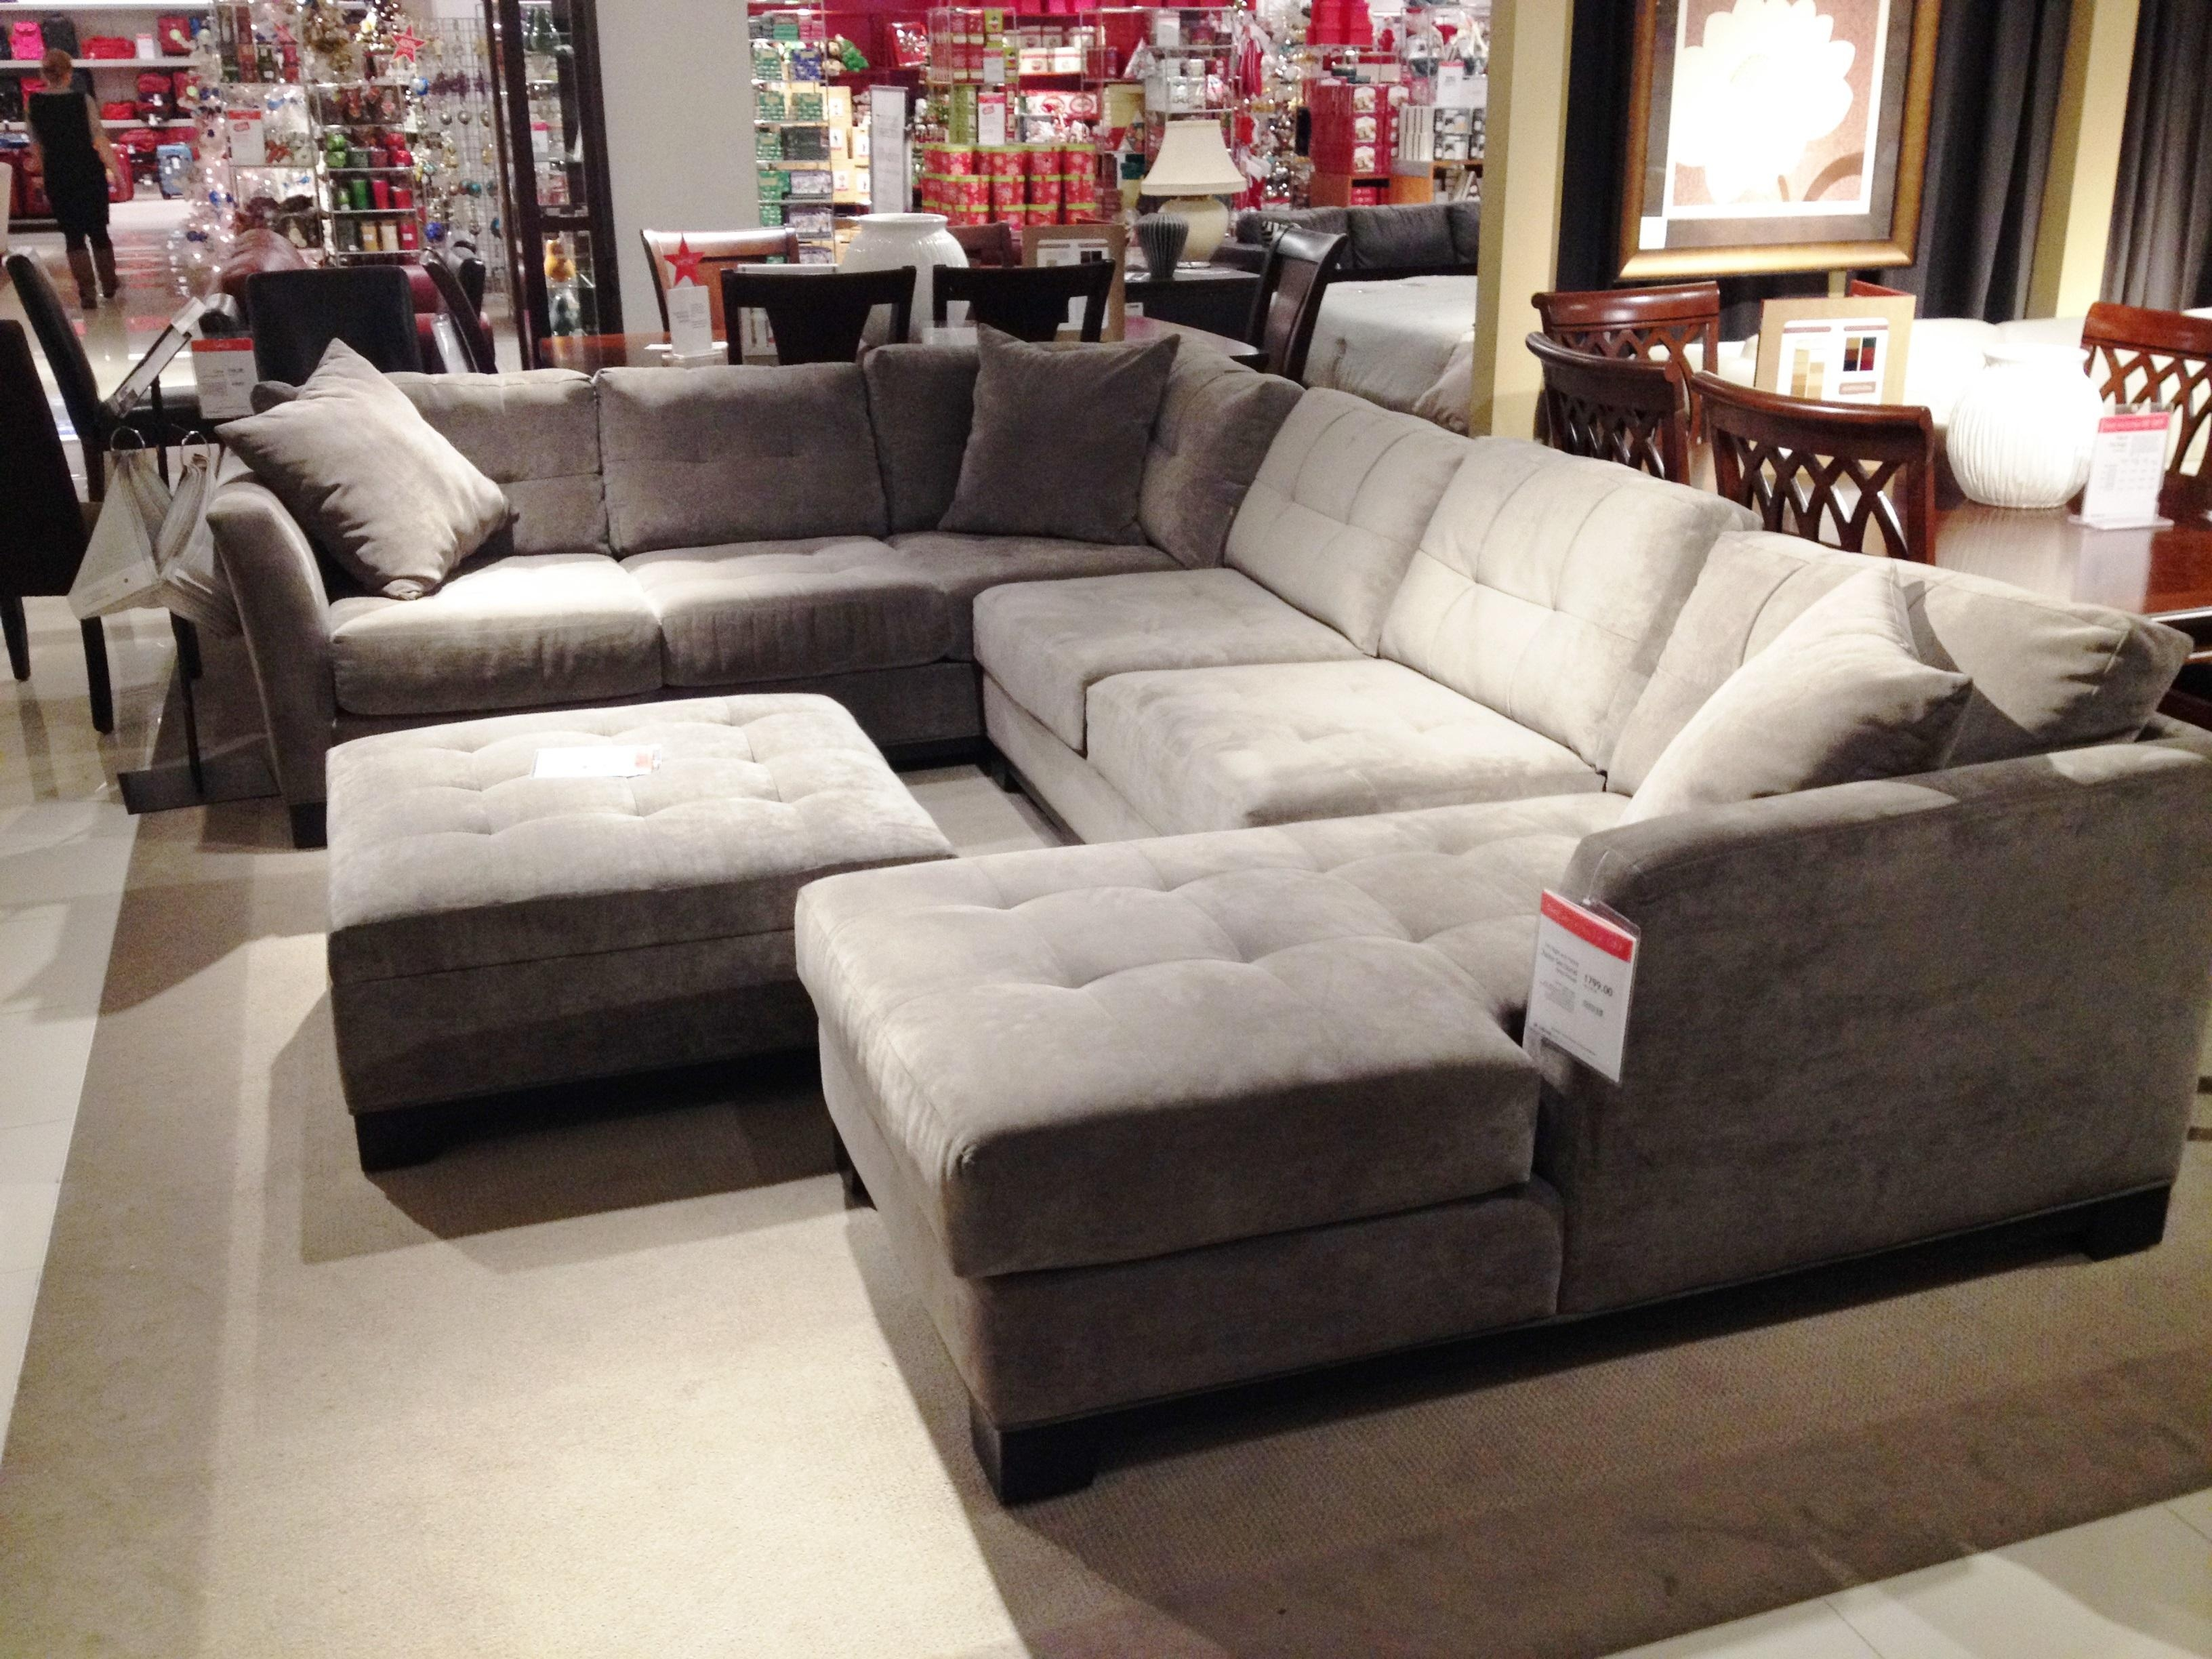 Sectional Sofas At Macys | Tehranmix Decoration Within Macys Sectional (Image 12 of 20)